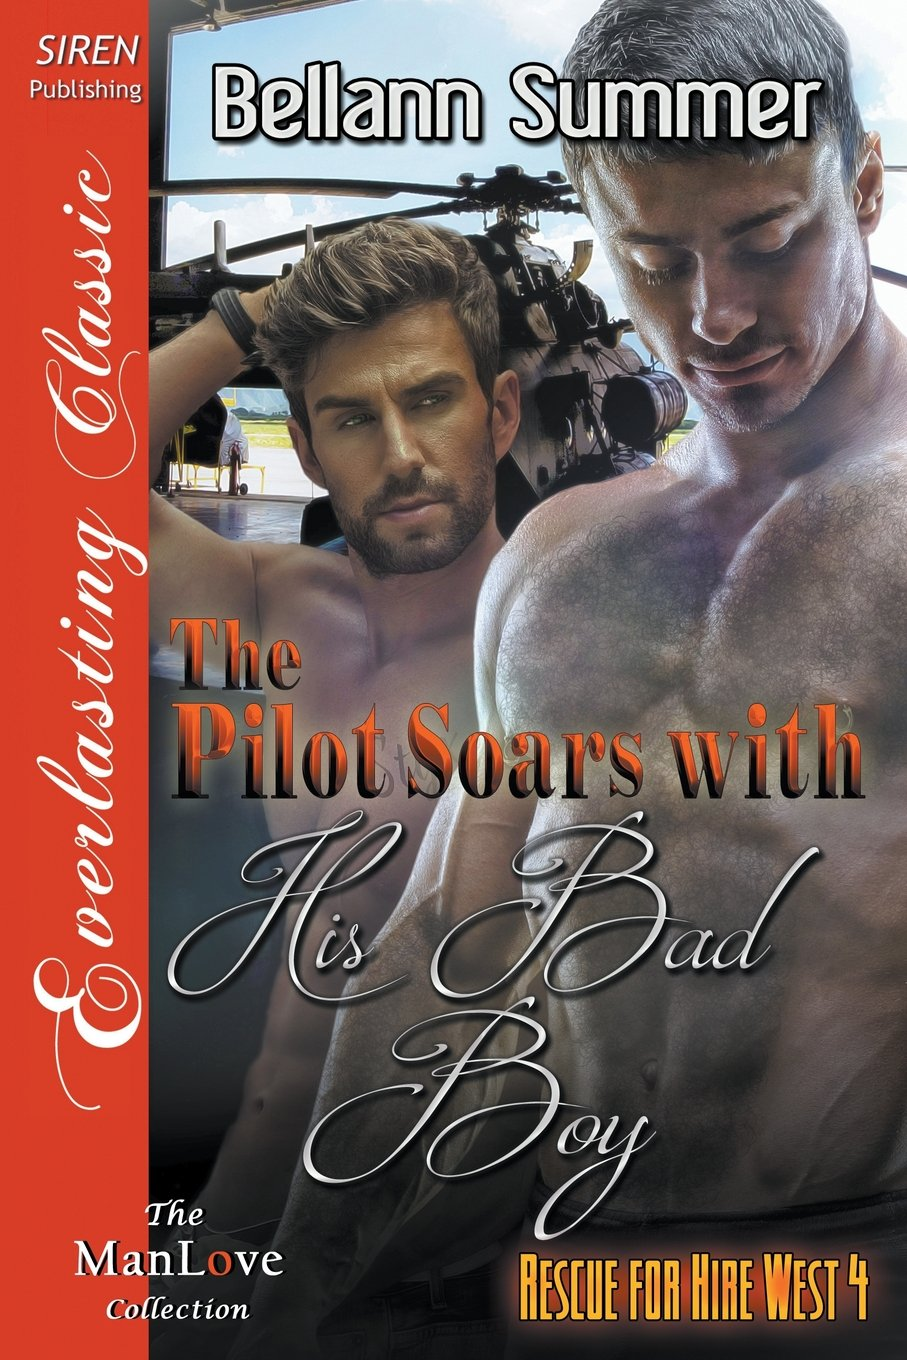 Download The Pilot Soars with His Bad Boy [Rescue for Hire West 4] (Siren Publishing Everlasting Classic ManLove) pdf